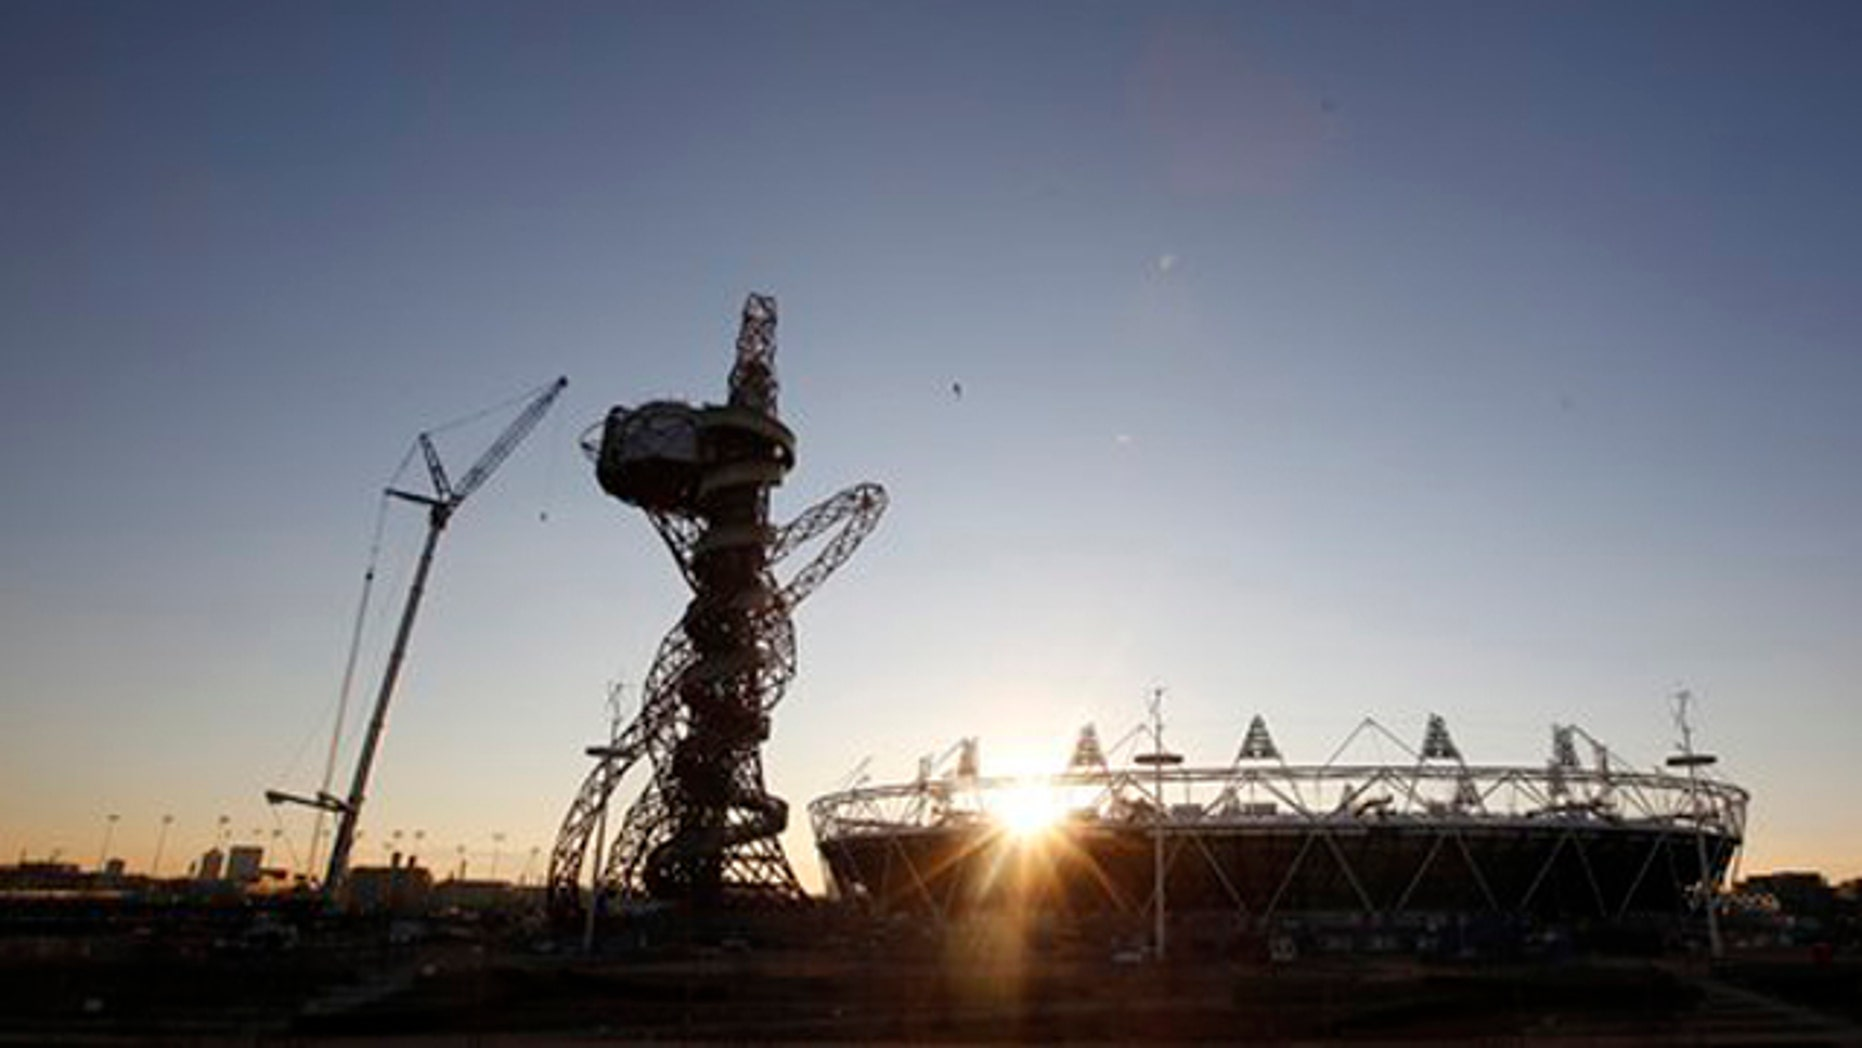 Feb. 23, 2012: The London 2012 Olympic Stadium is seen at about sunset, with the partially completed ArcelorMittal Orbit  at the Olympic Park in London.